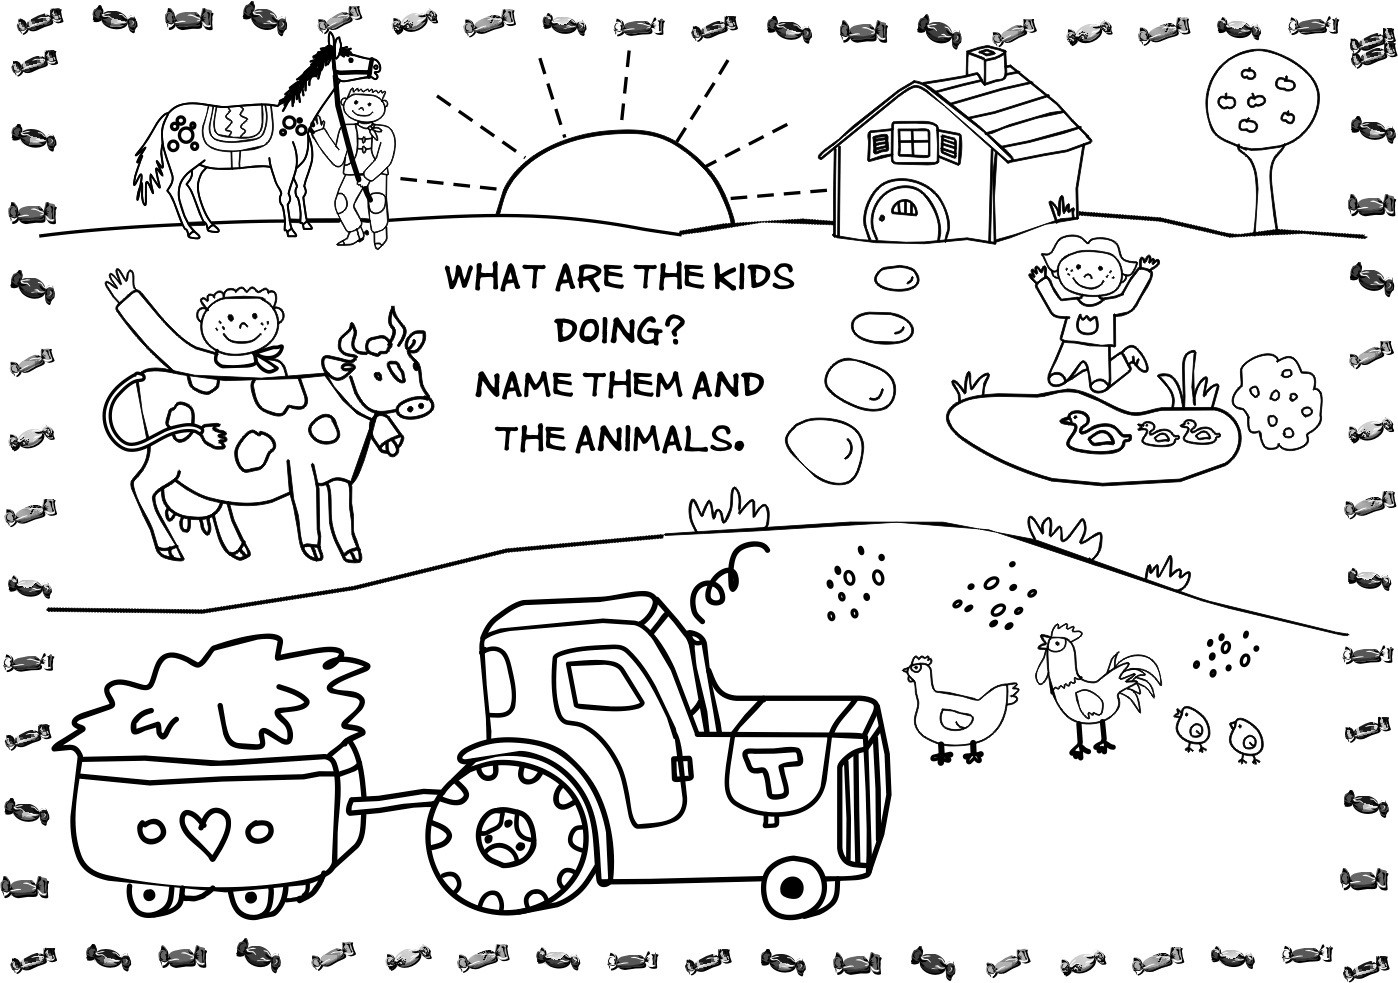 Farm Coloring Sheet  Free Printable Farm Animal Coloring Pages For Kids